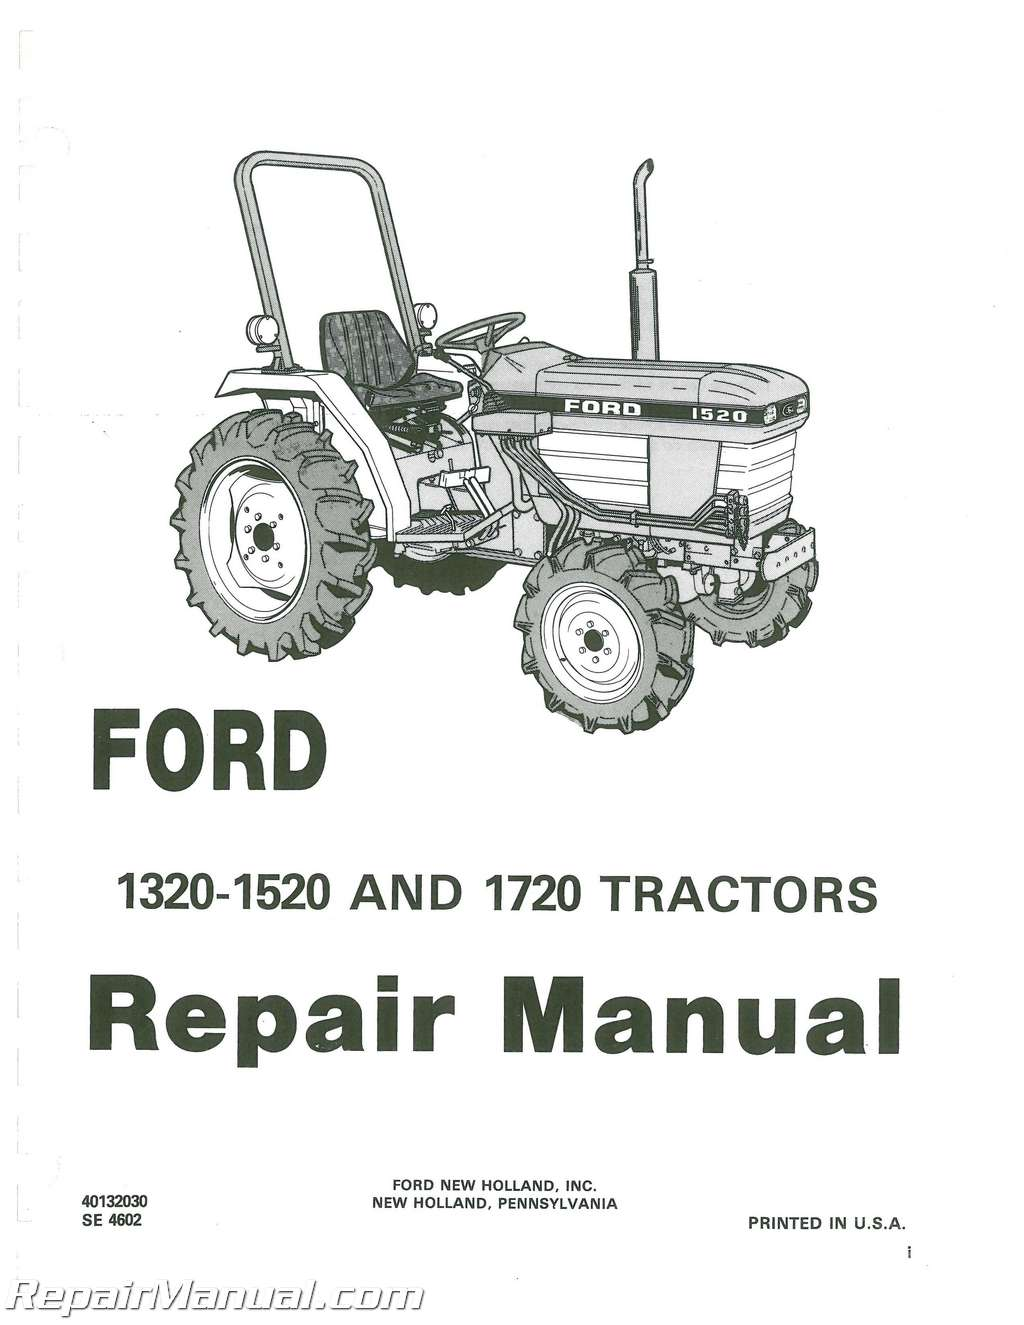 1720 new holland tractor manual how to and user guide instructions u2022 rh taxibermuda co 1720 ford tractor manual pdf 1720 ford tractor manual pdf